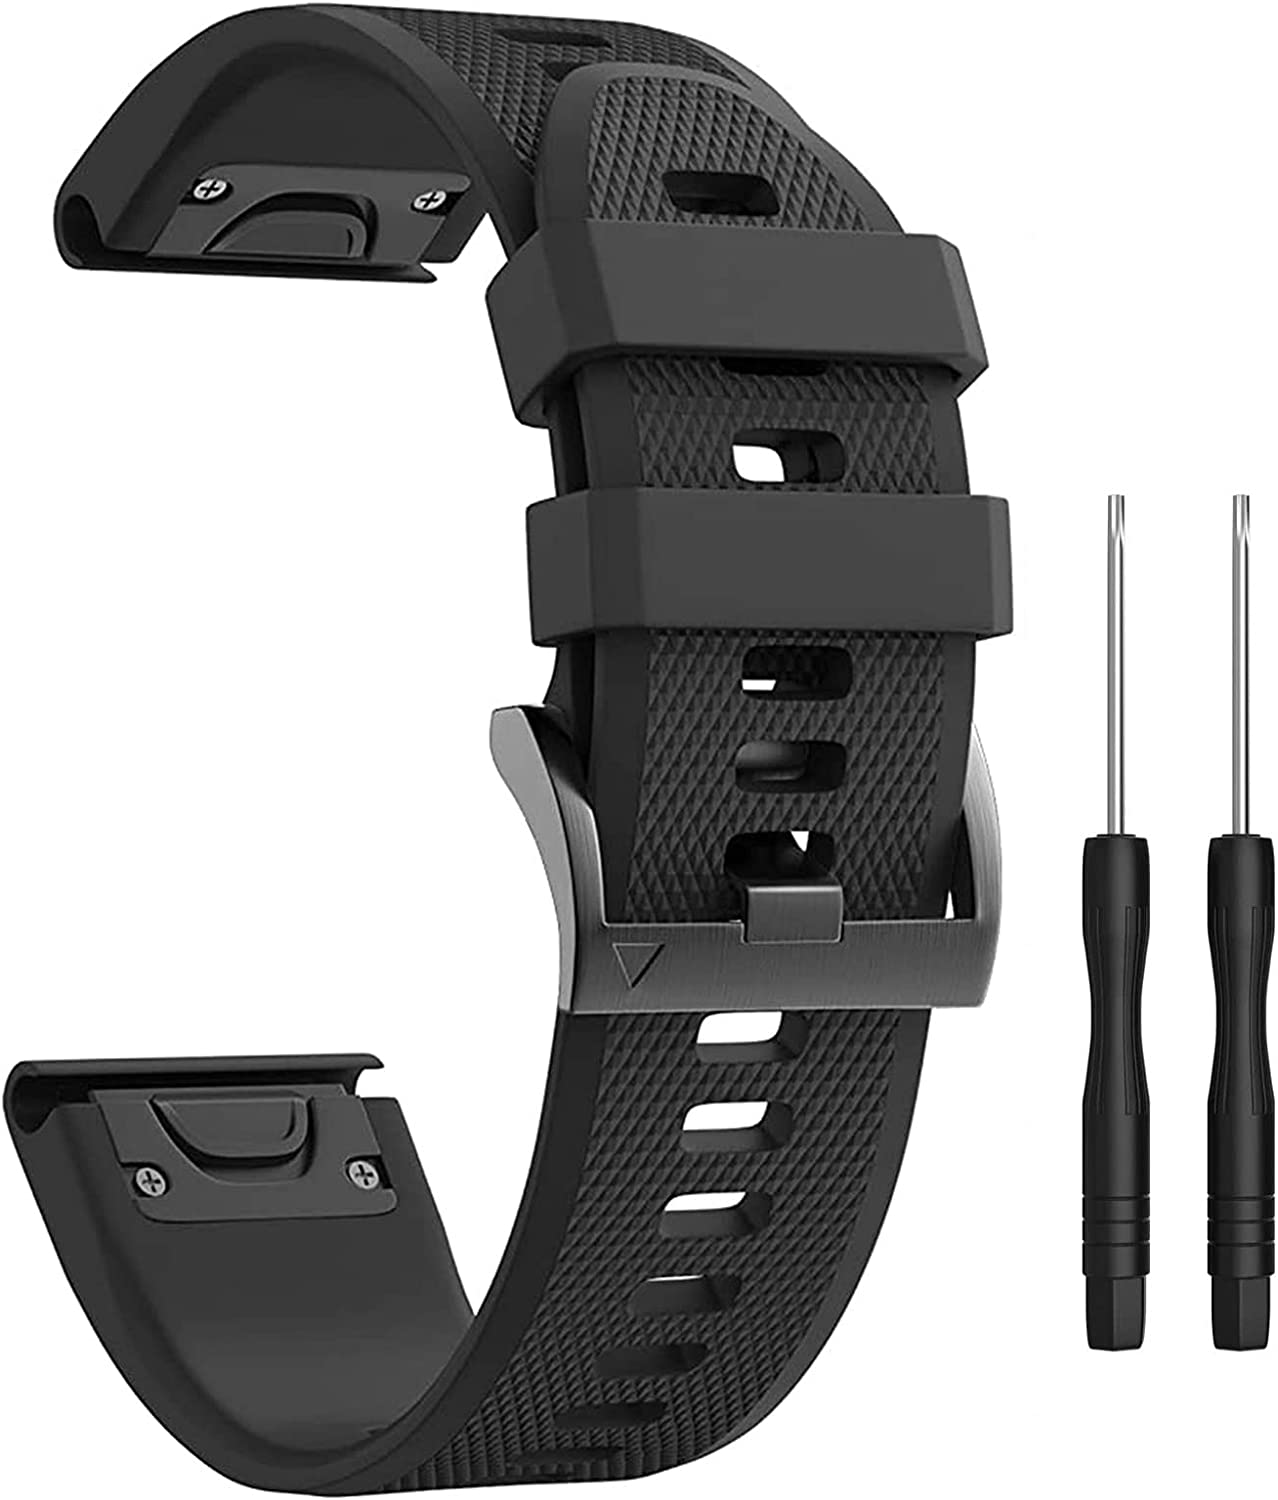 Watch Band Fenix 5X 26mm Width Compatible with Fenix 5X/Fenix 5XPlus/Fenix 6X Pro Silicone Band